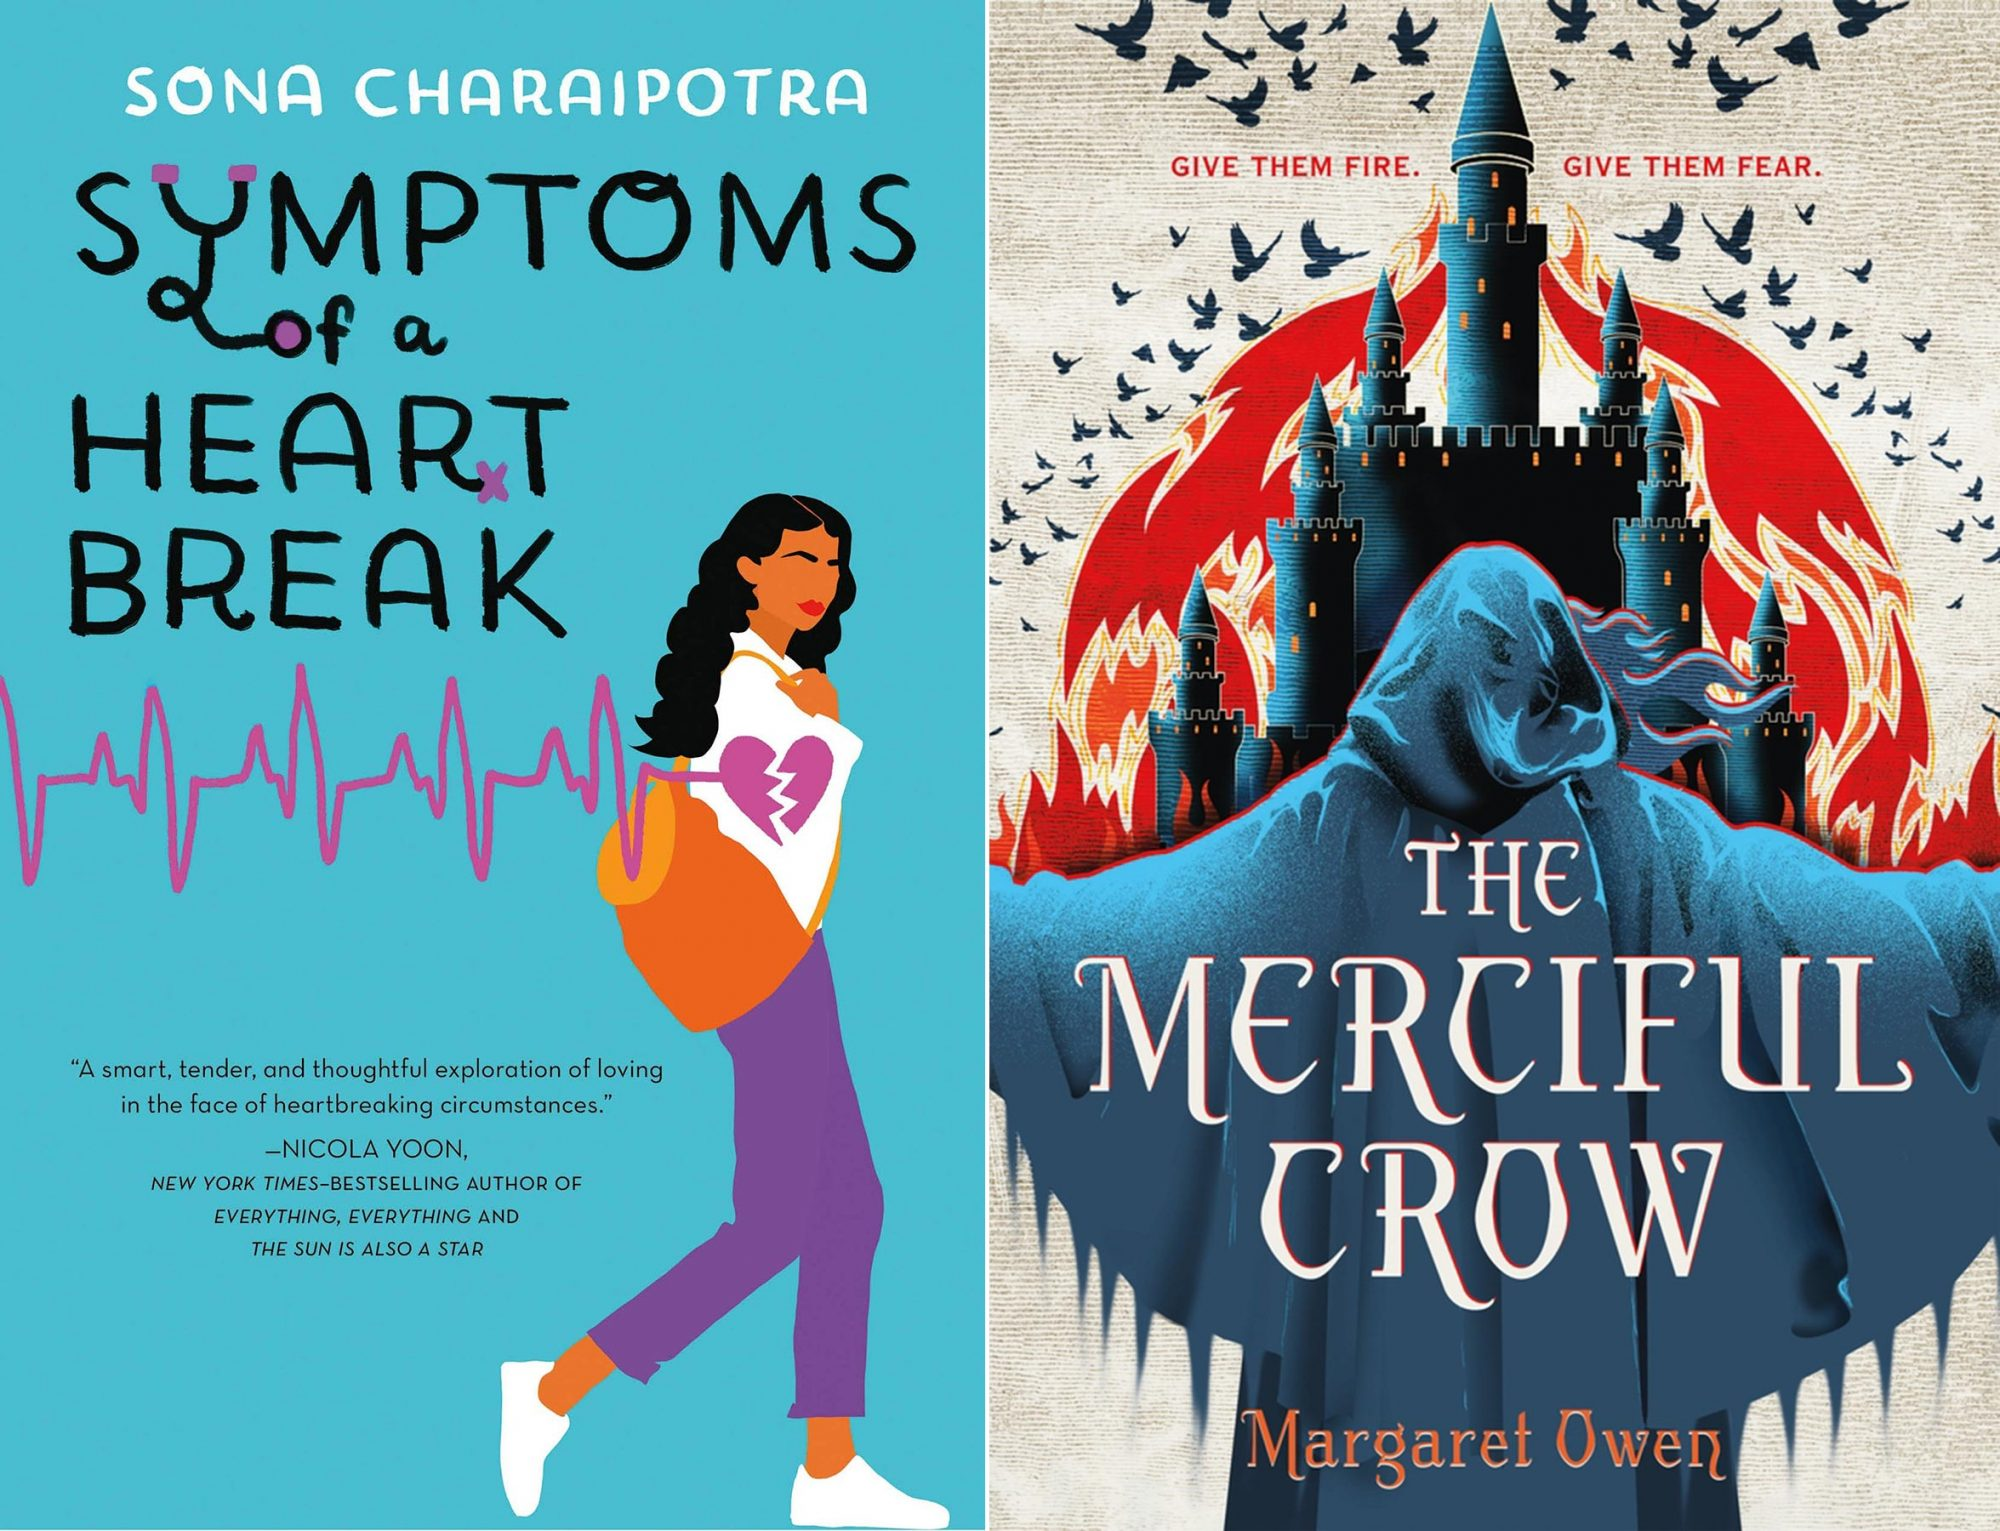 Symptoms of a Heartbreak by Sona Charaipotra Publisher: Imprint The Merciful Crow Series (Volume 1) by Margaret Owen Henry Holt and Co. Holt Books for Young Readers On Sale: 07/30/2019 ISBN: 9781250191922